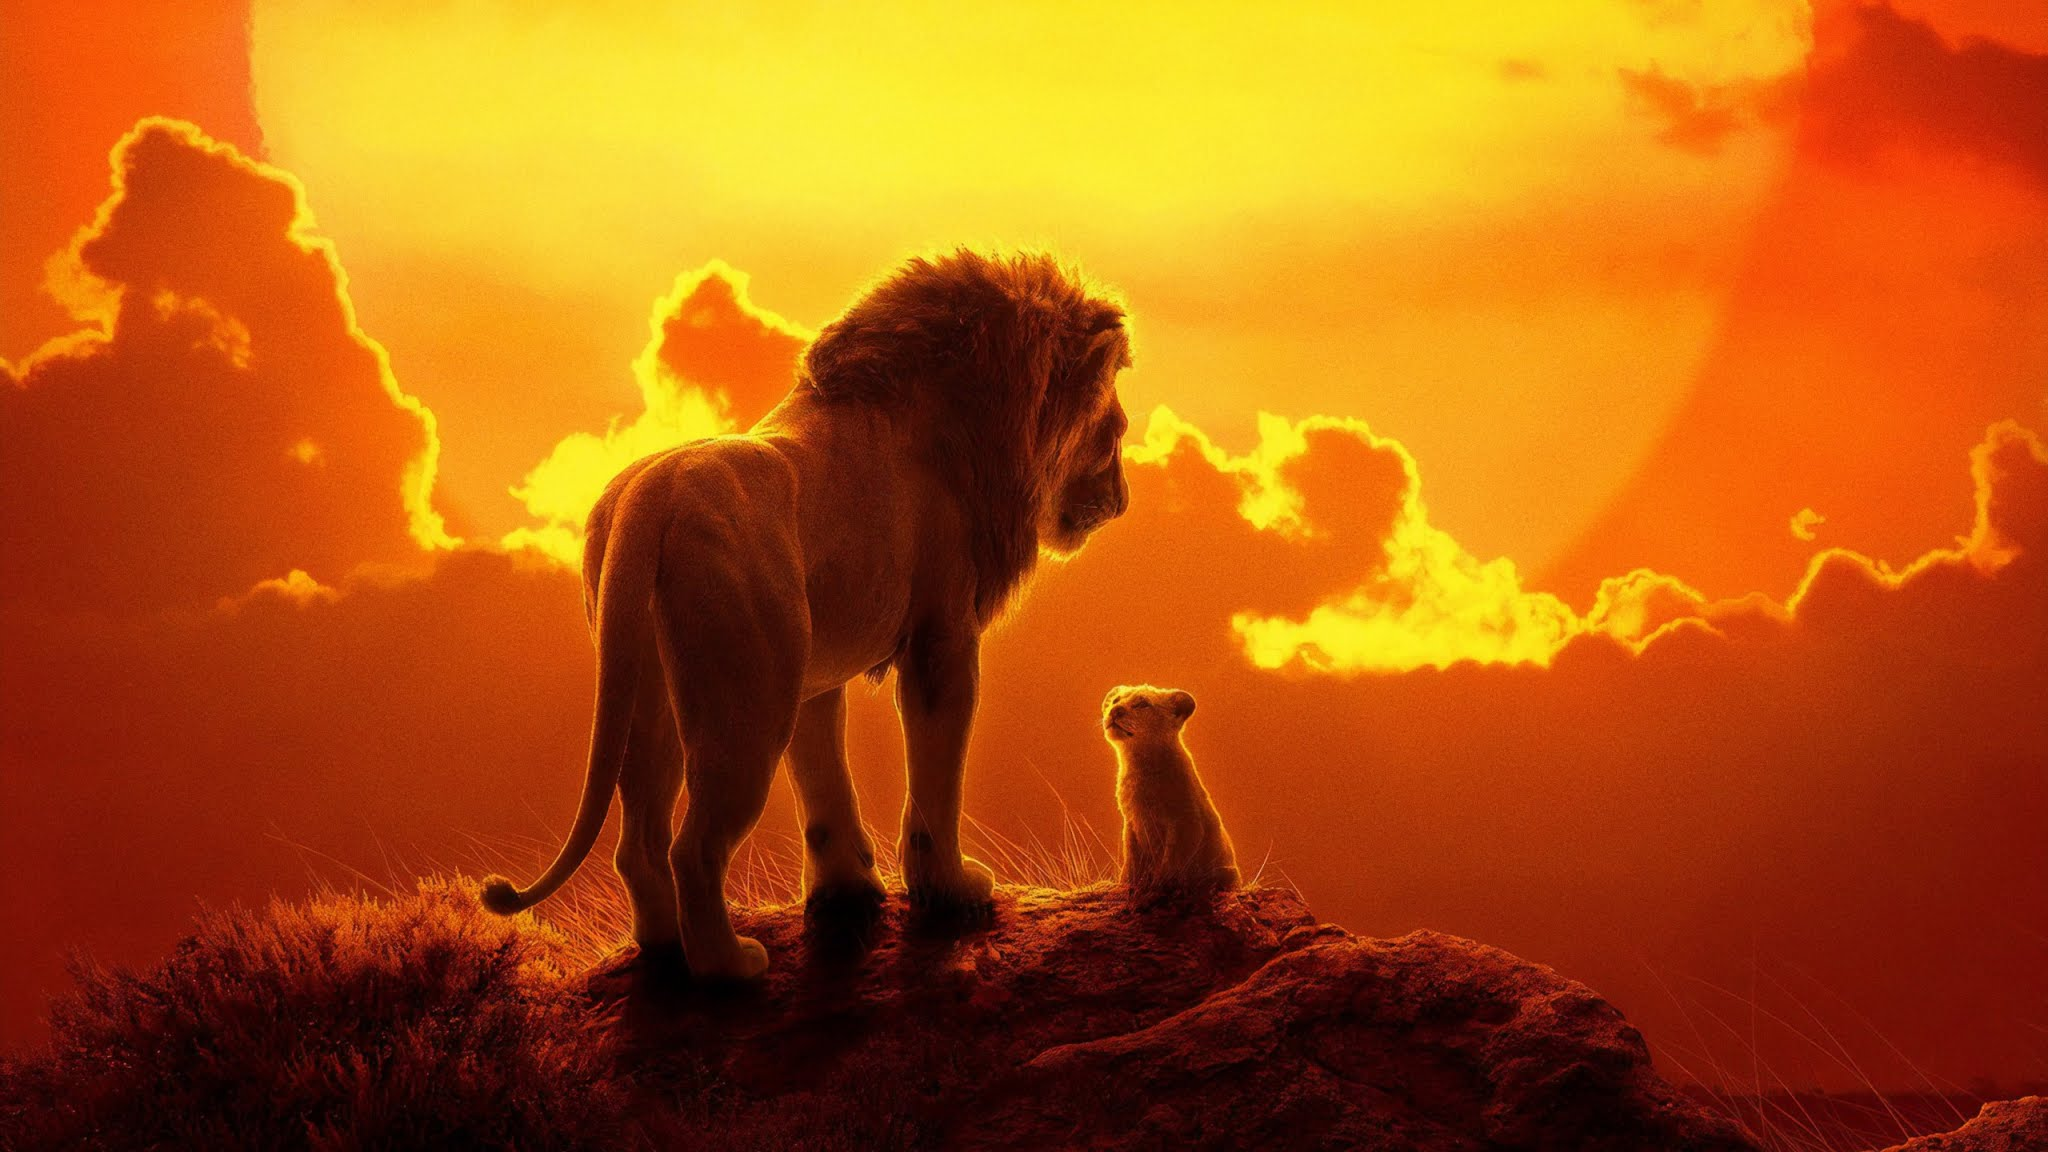 The Lion King - Mufasa And Simba 2019 , HD Wallpaper & Backgrounds